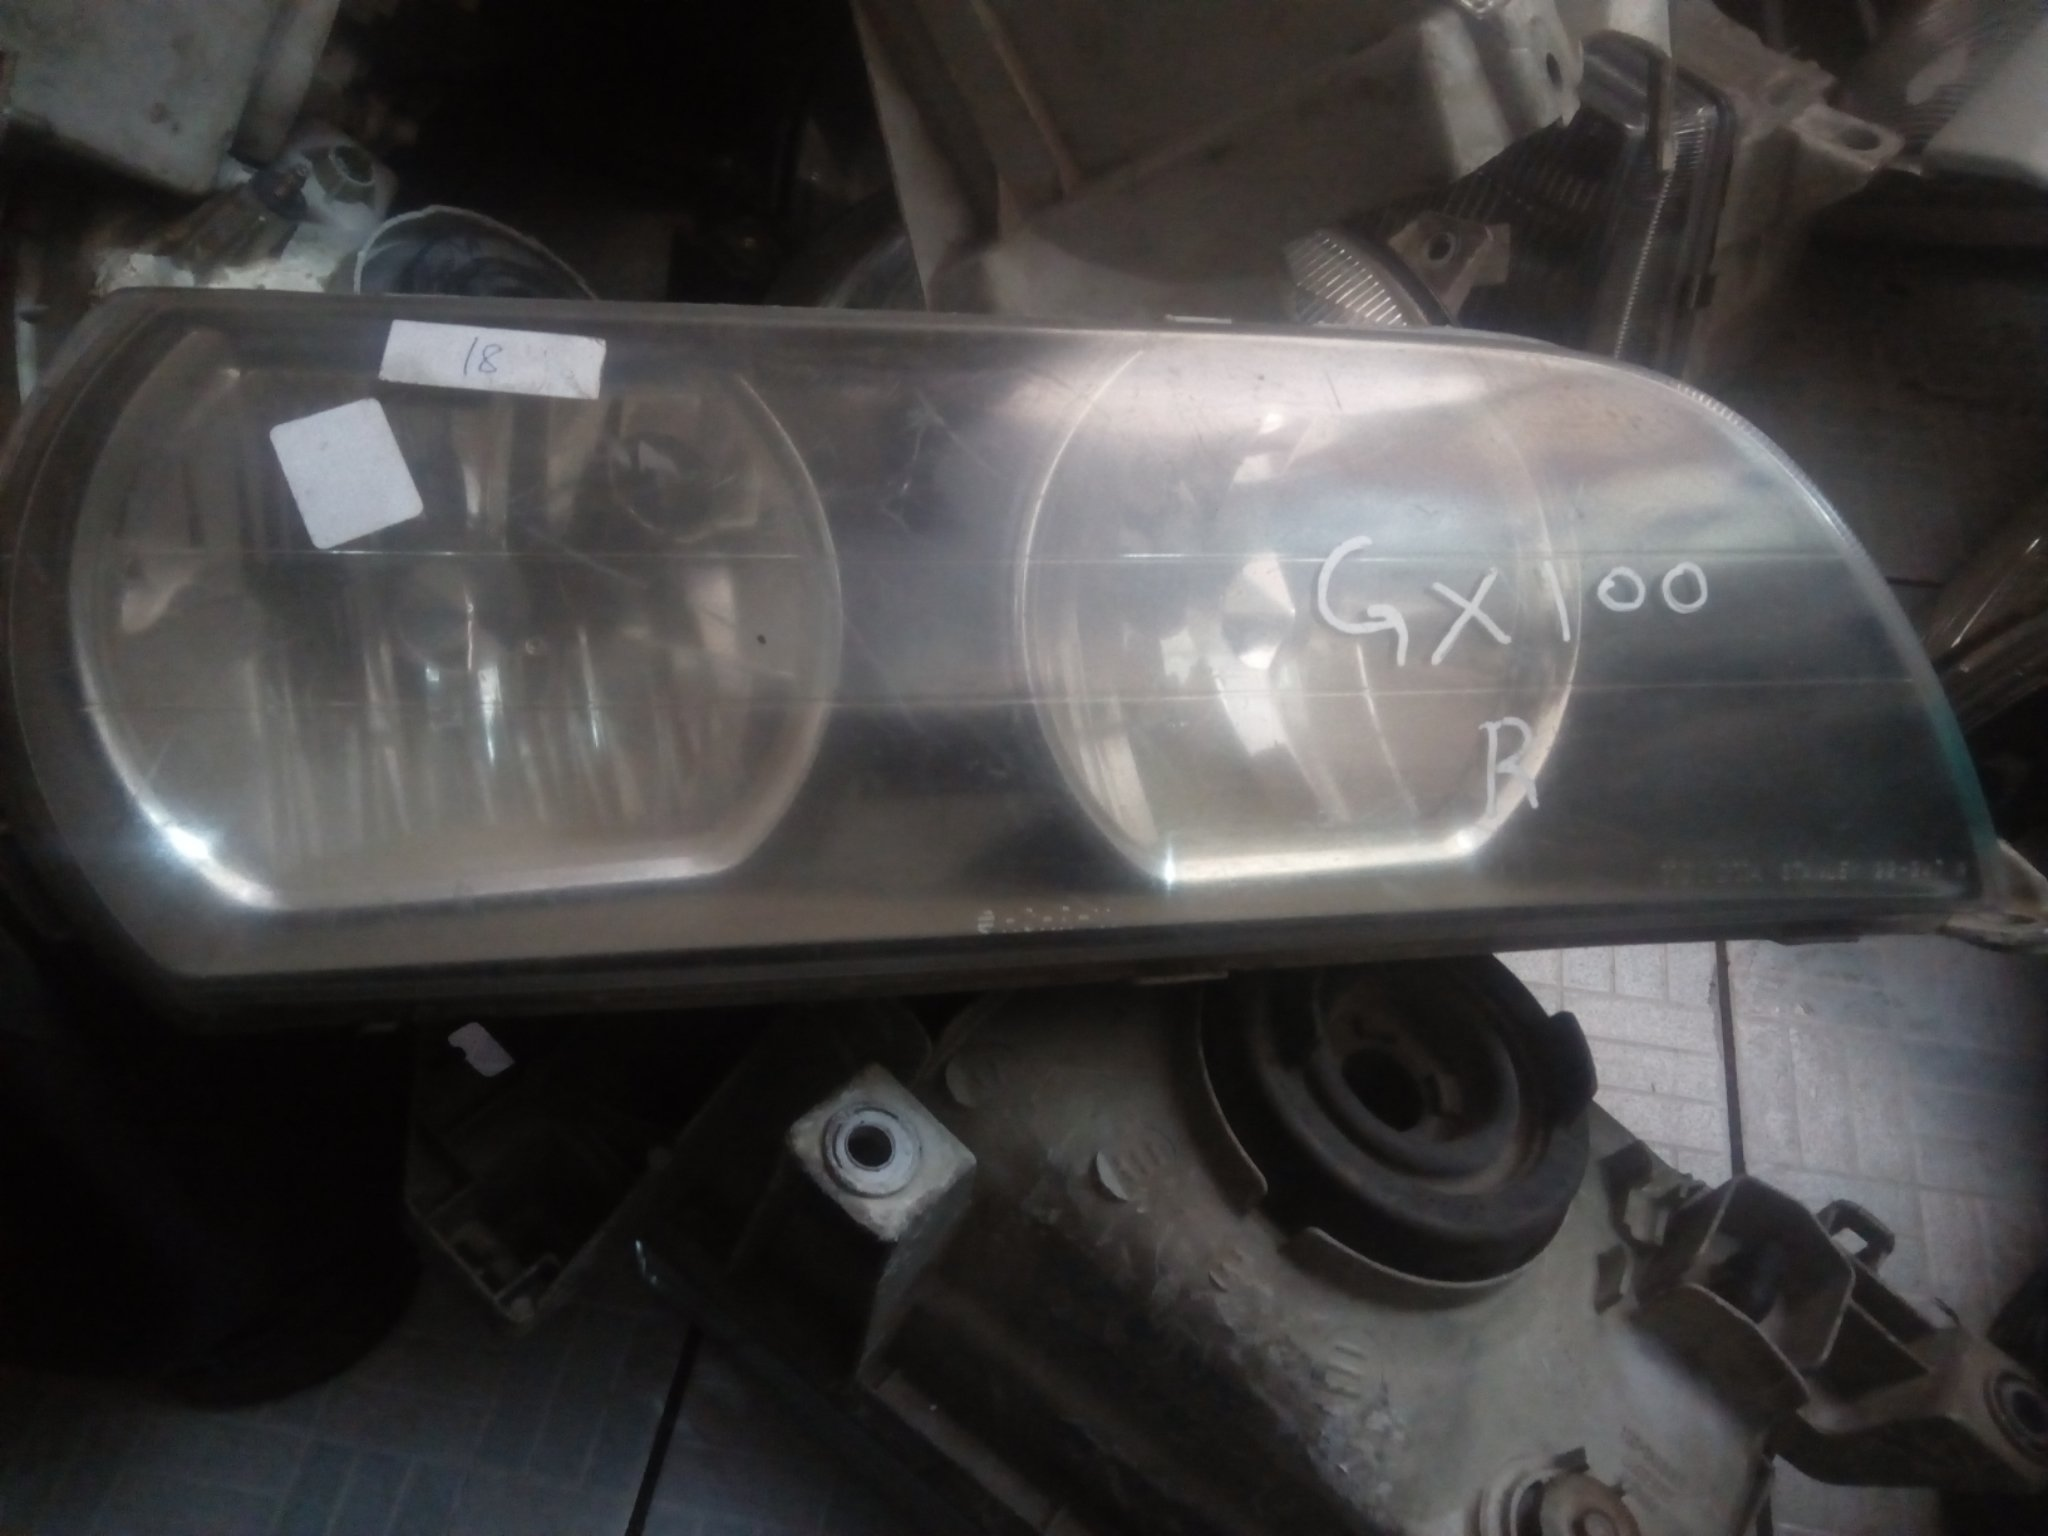 Gx100 headlight 00563